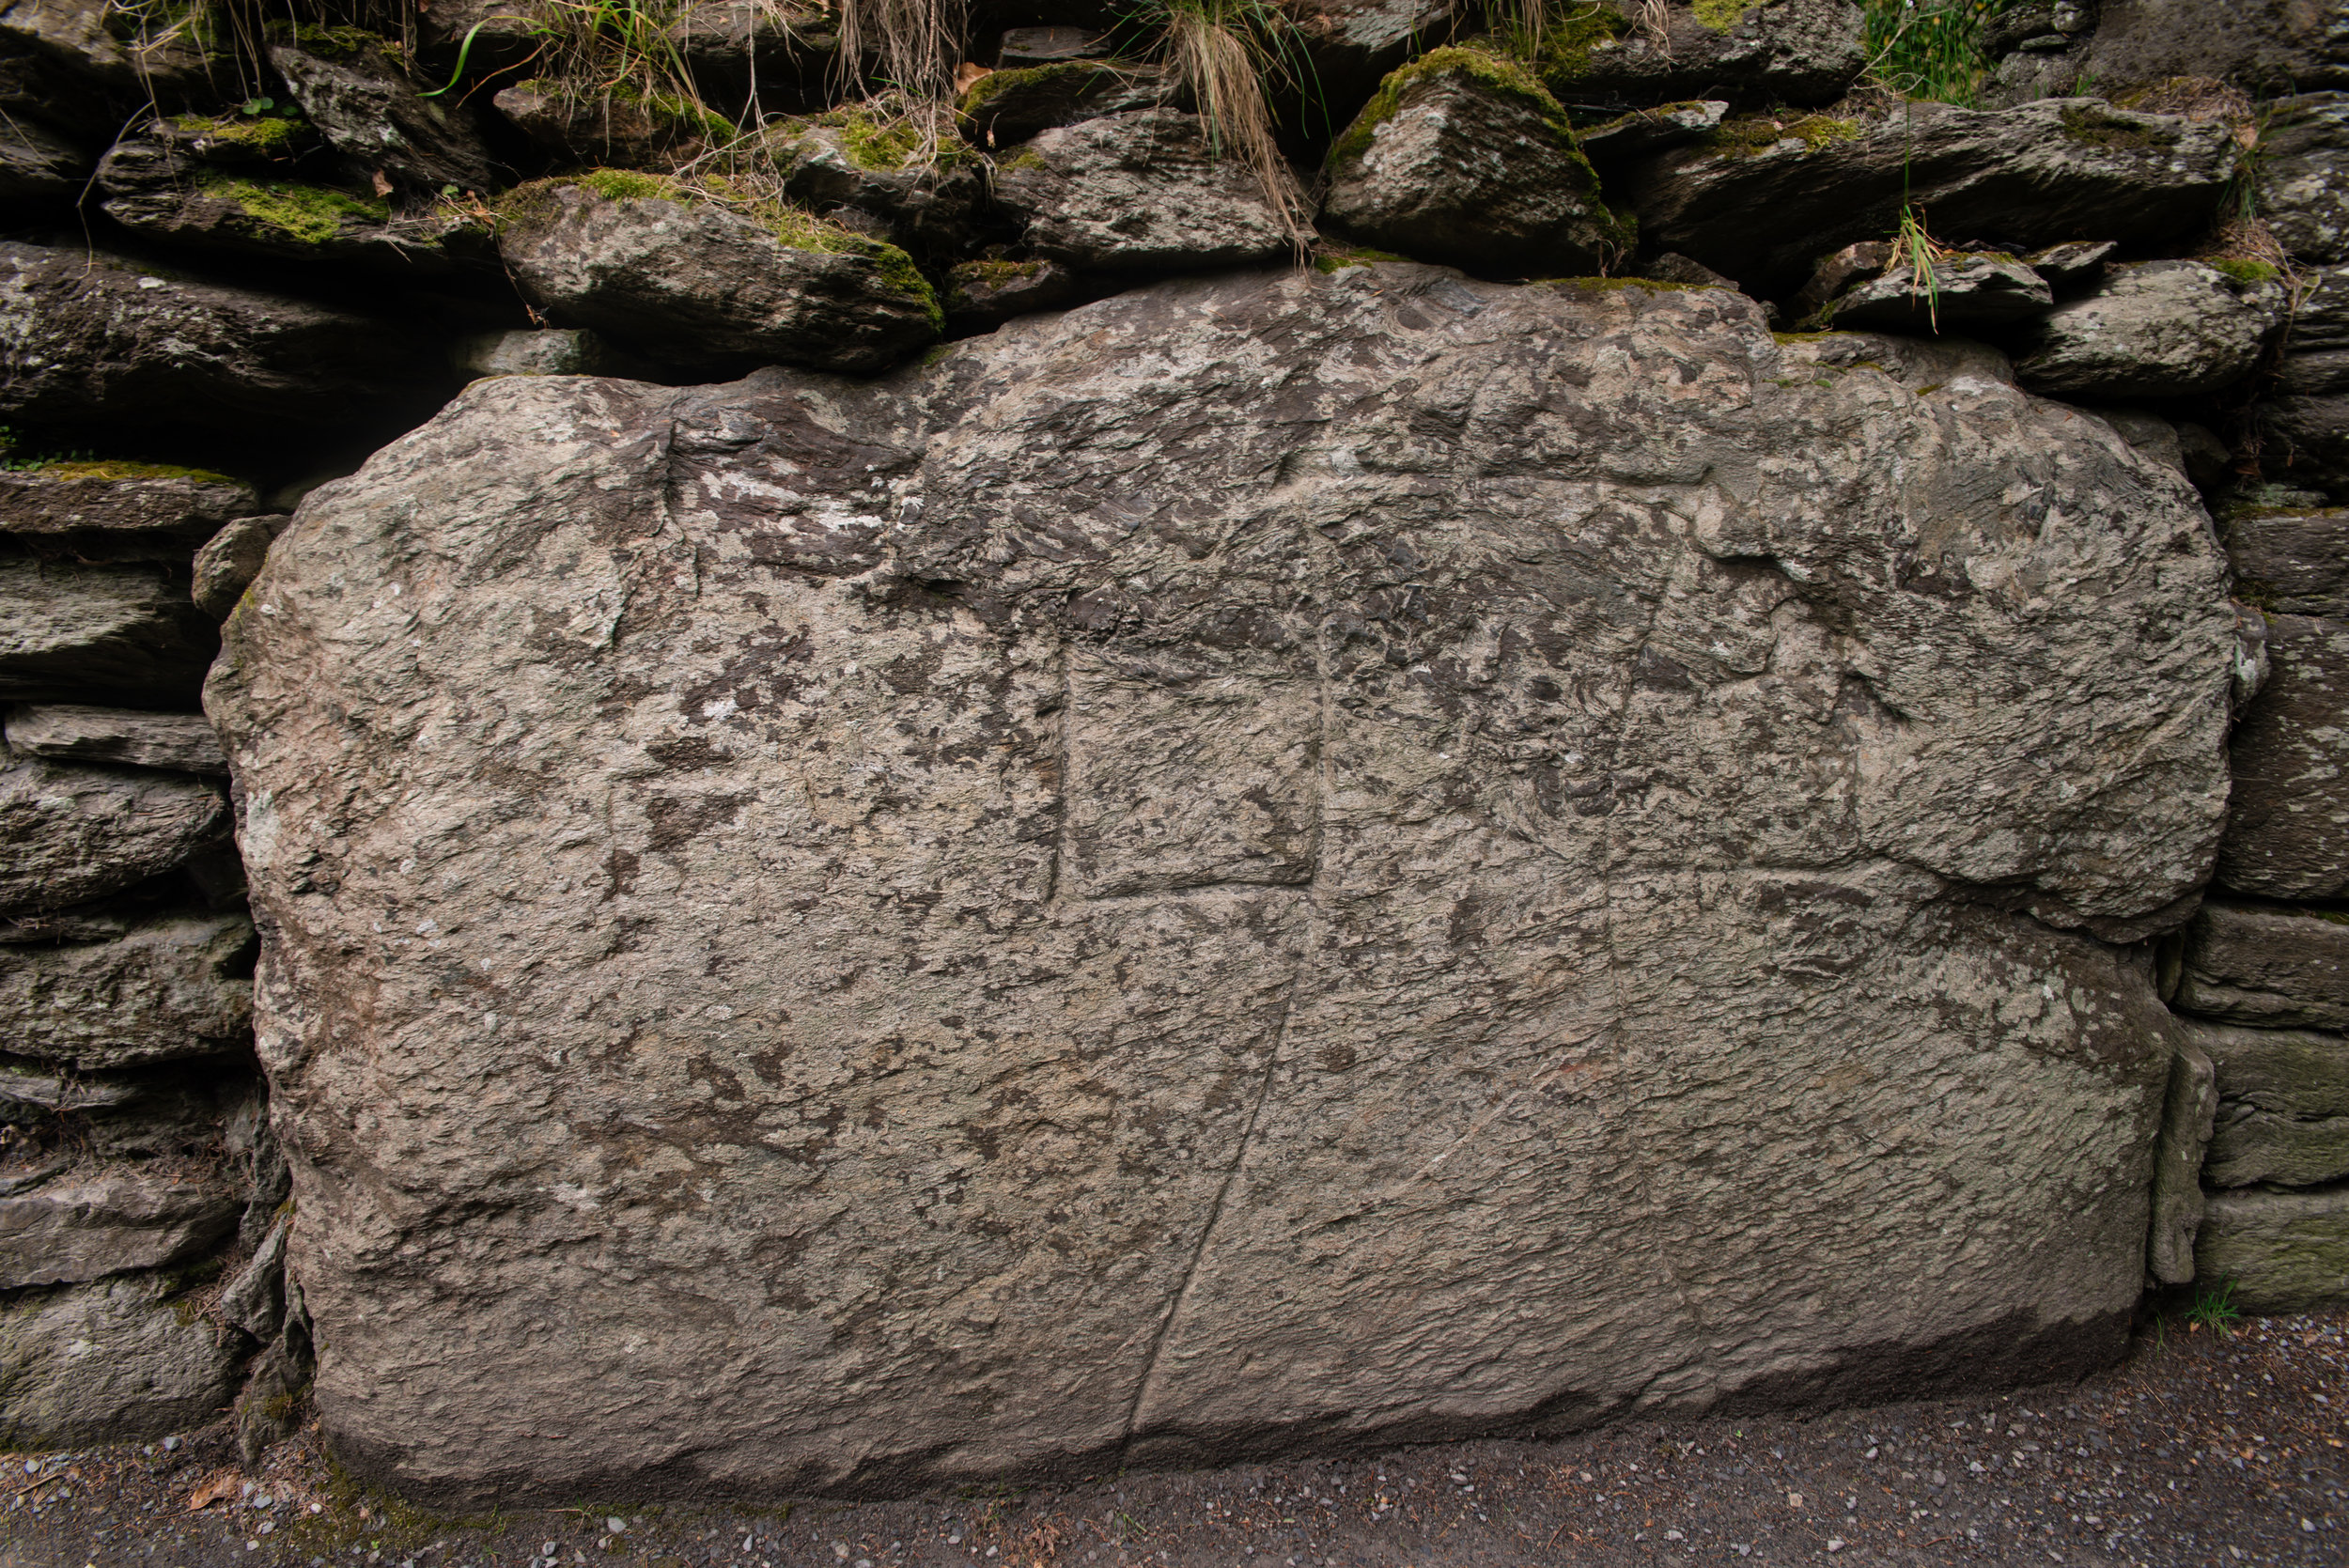 This is the sanctuary mark right beyond the archway leading to the old monastic city. Once a traveler passed this stone, they were under the protection of the city.